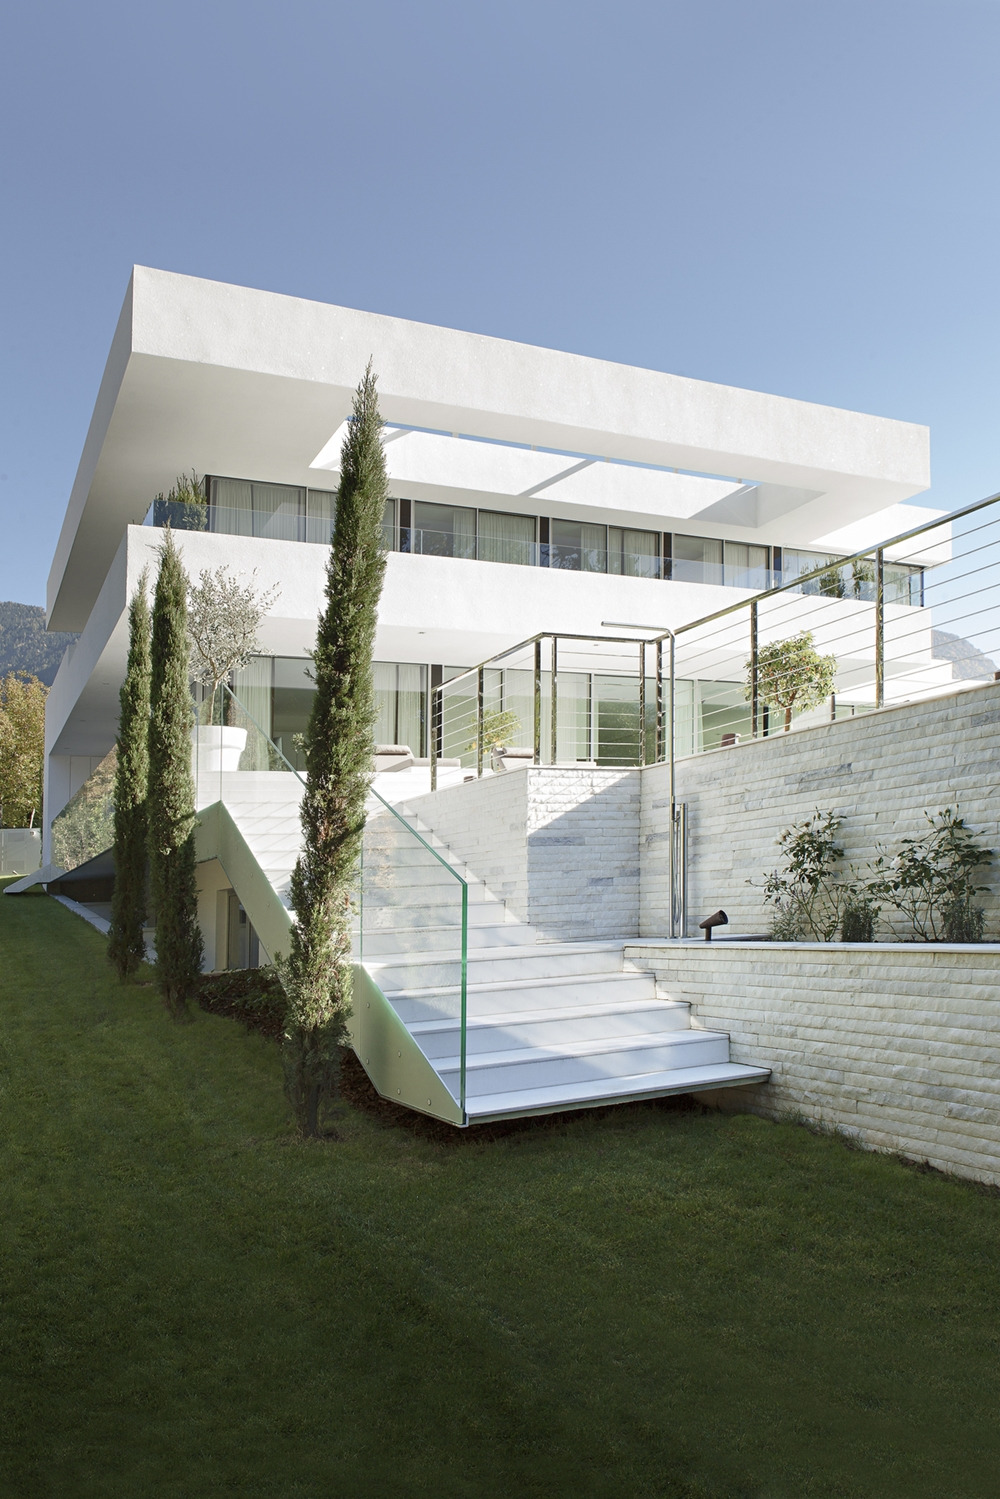 Top 10 Beautiful Homes In the World New Most Beautiful Houses In the World House M